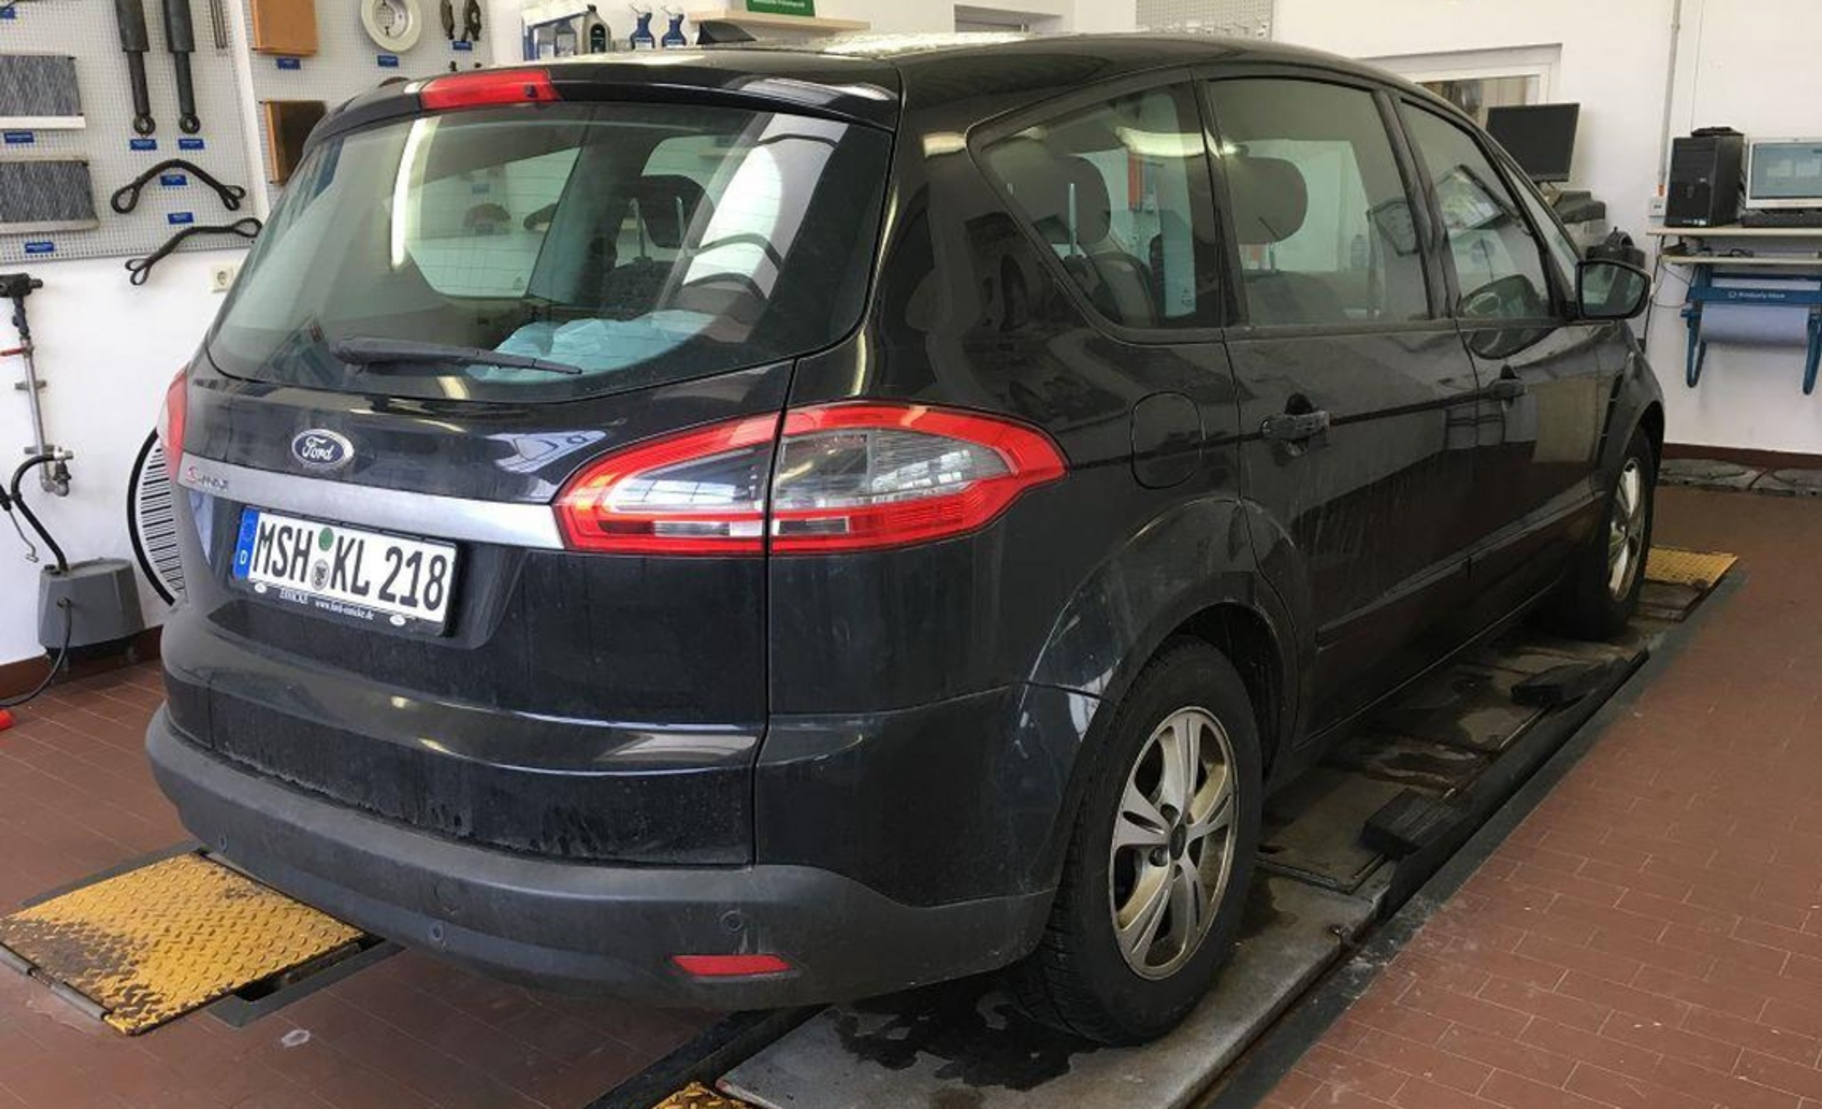 Ford S-Max 2.0 TDCi DPF Aut., Business Edition (495133) detail2